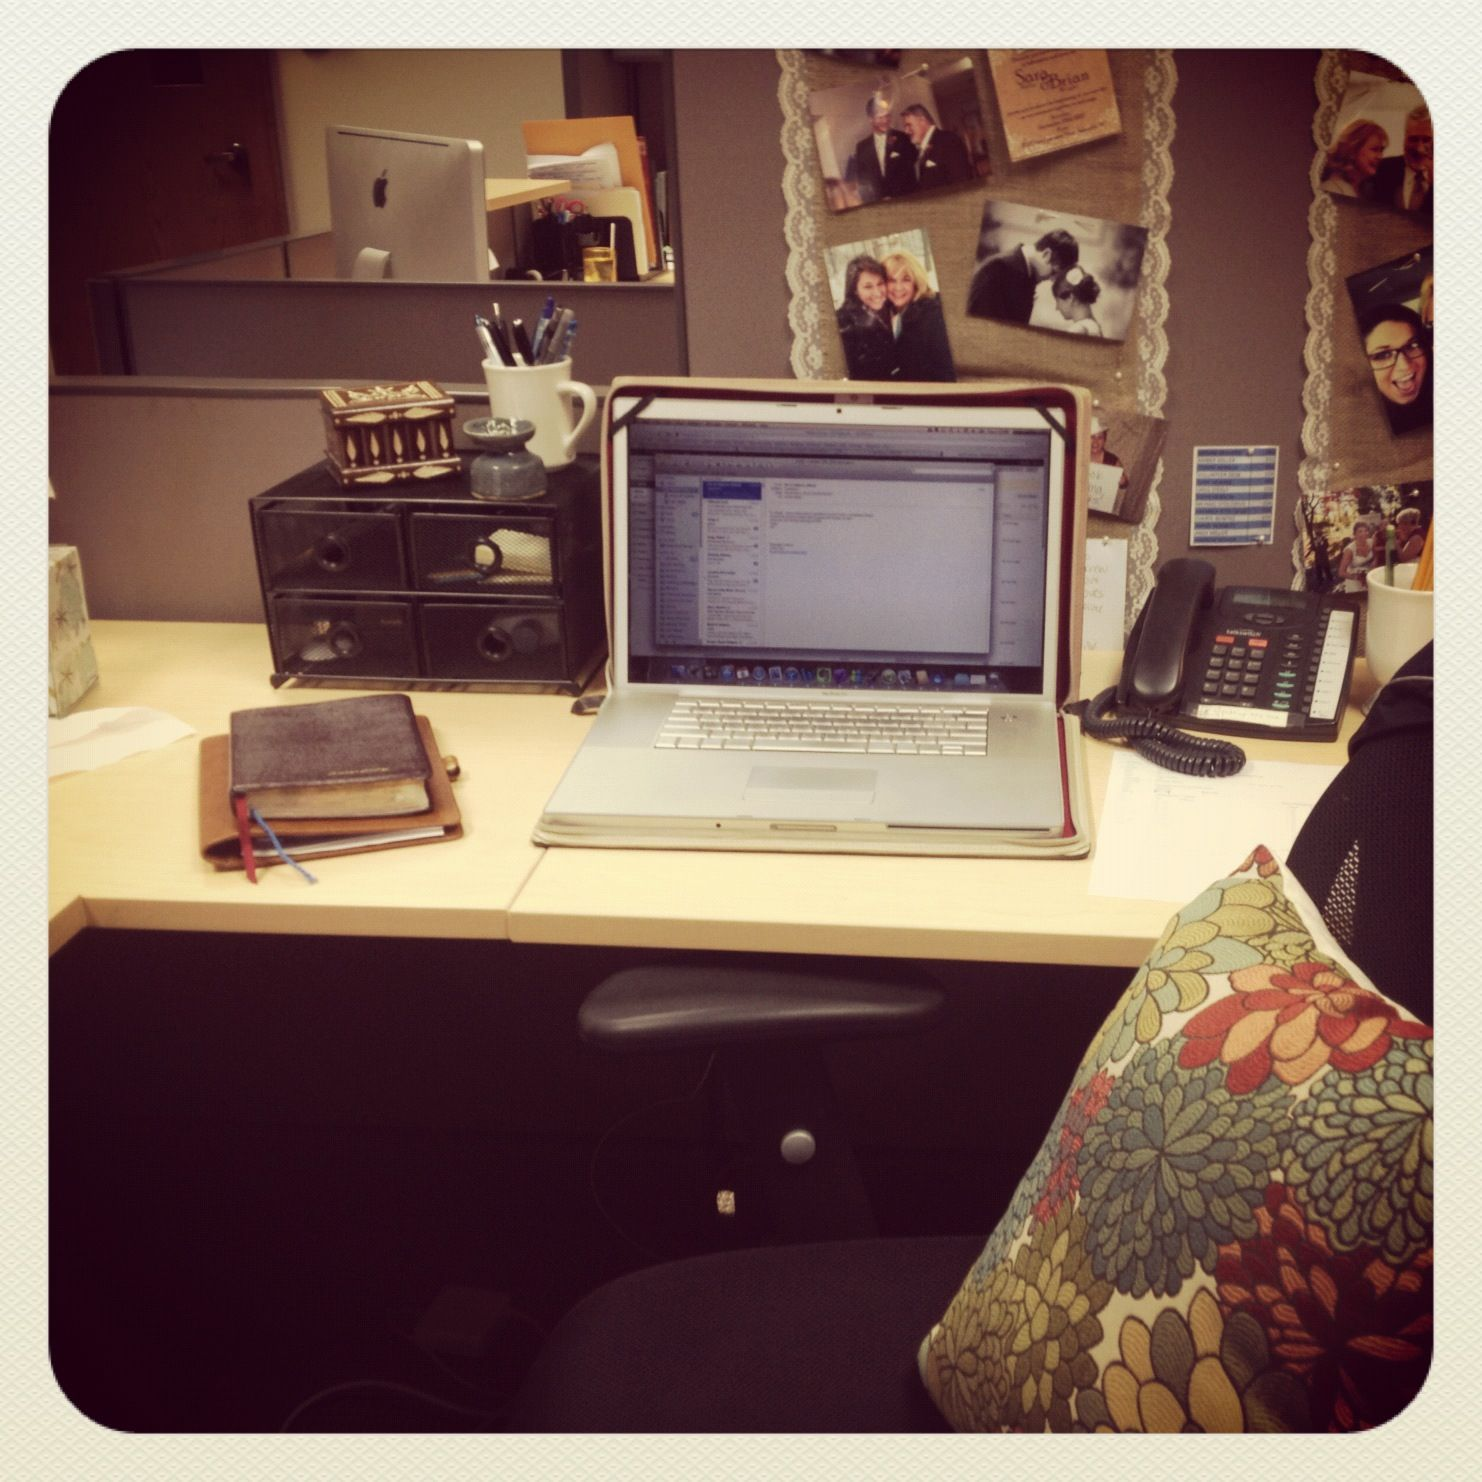 A Very Cute Cubicle I Love The Burlap Lace Runner